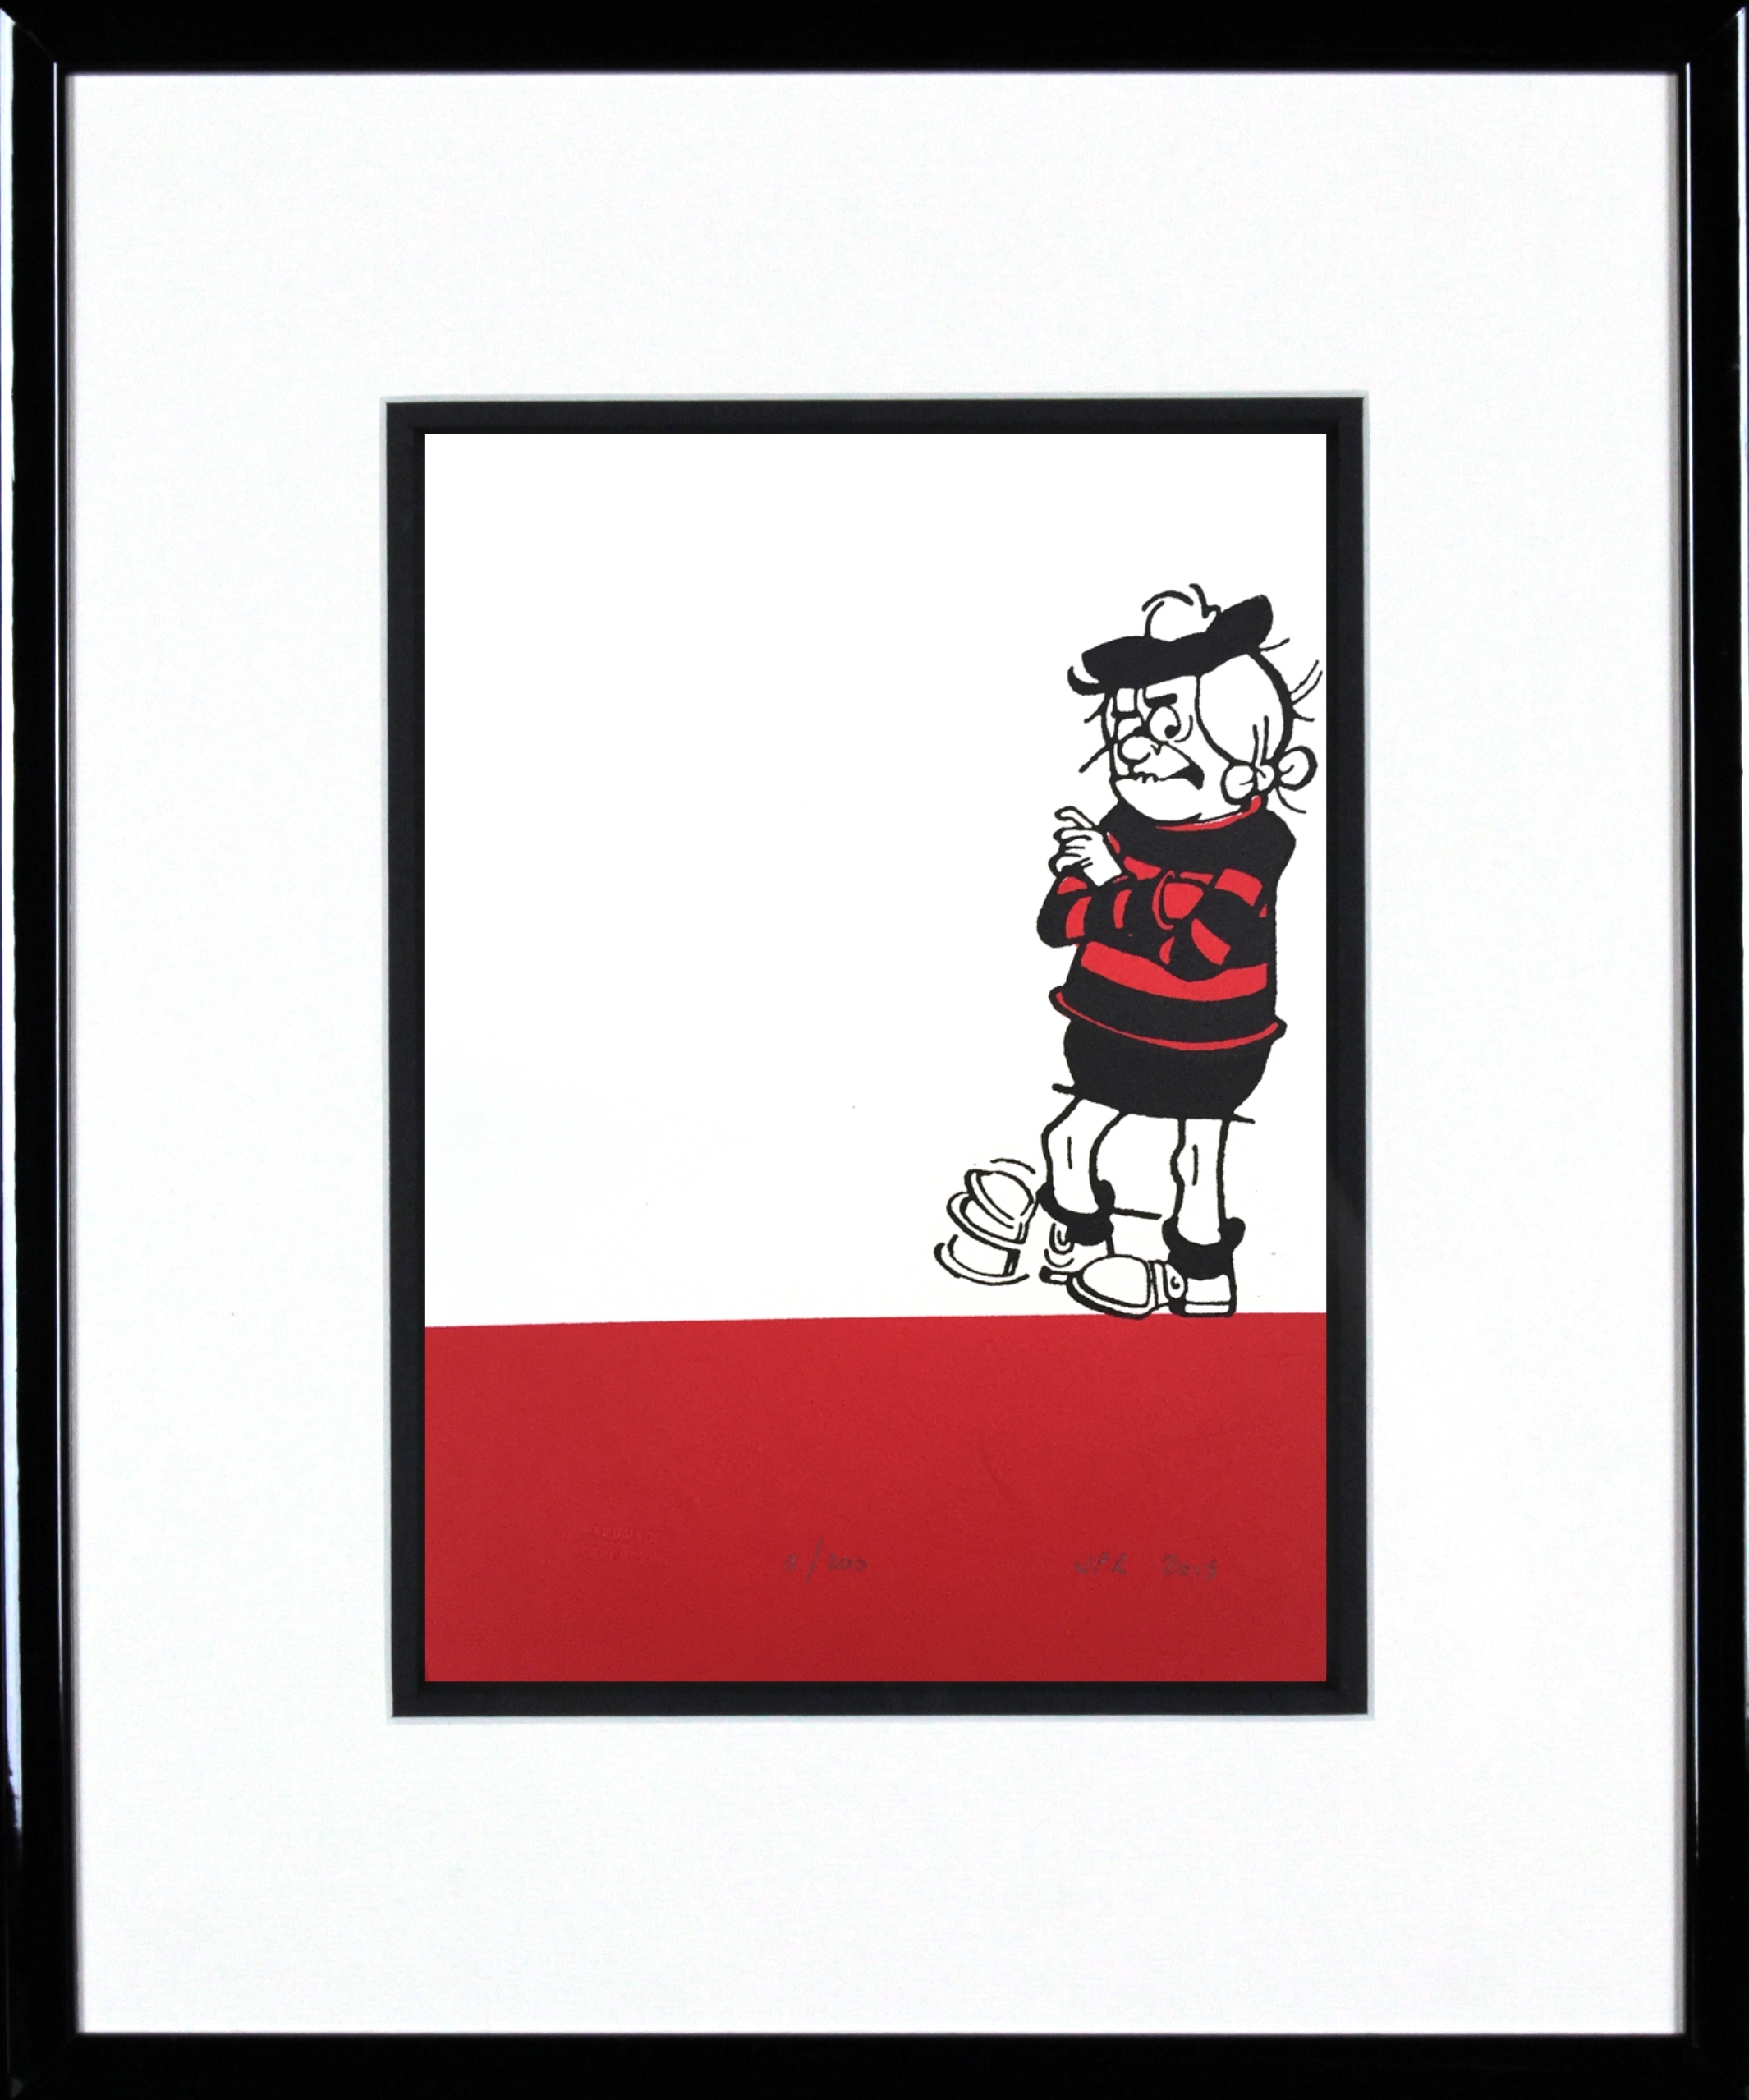 Minnie The Minx Taps Her Foot (Framed) – Eduardo Alessandro Studios Regarding Most Recent Framed Comic Art Prints (View 9 of 15)